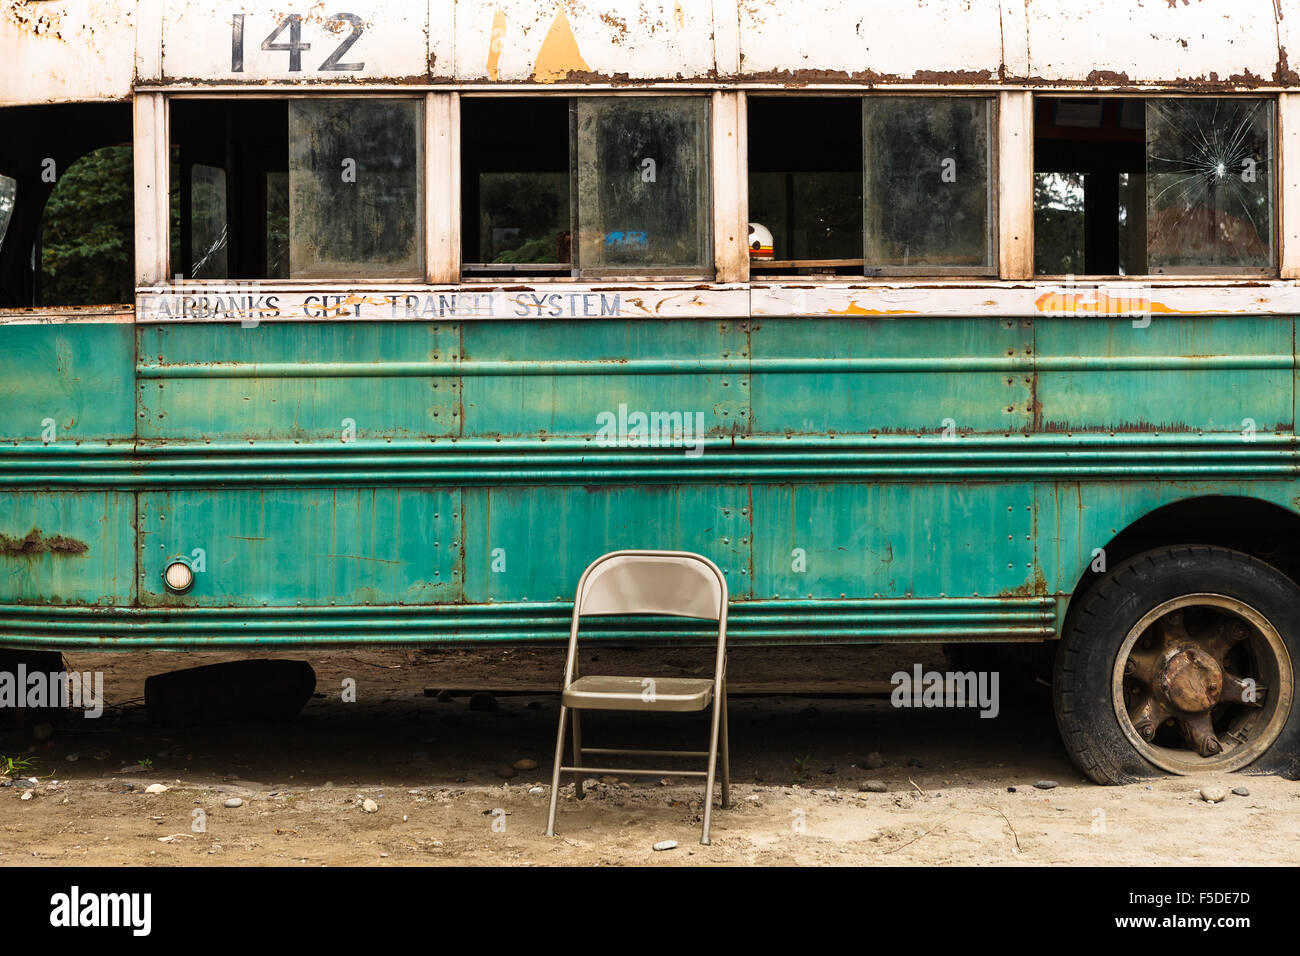 The famous Bus 142 where Christopher McCandless was found dead, by the  Stampede Trail, near Denali National Park, Alaska, USA.